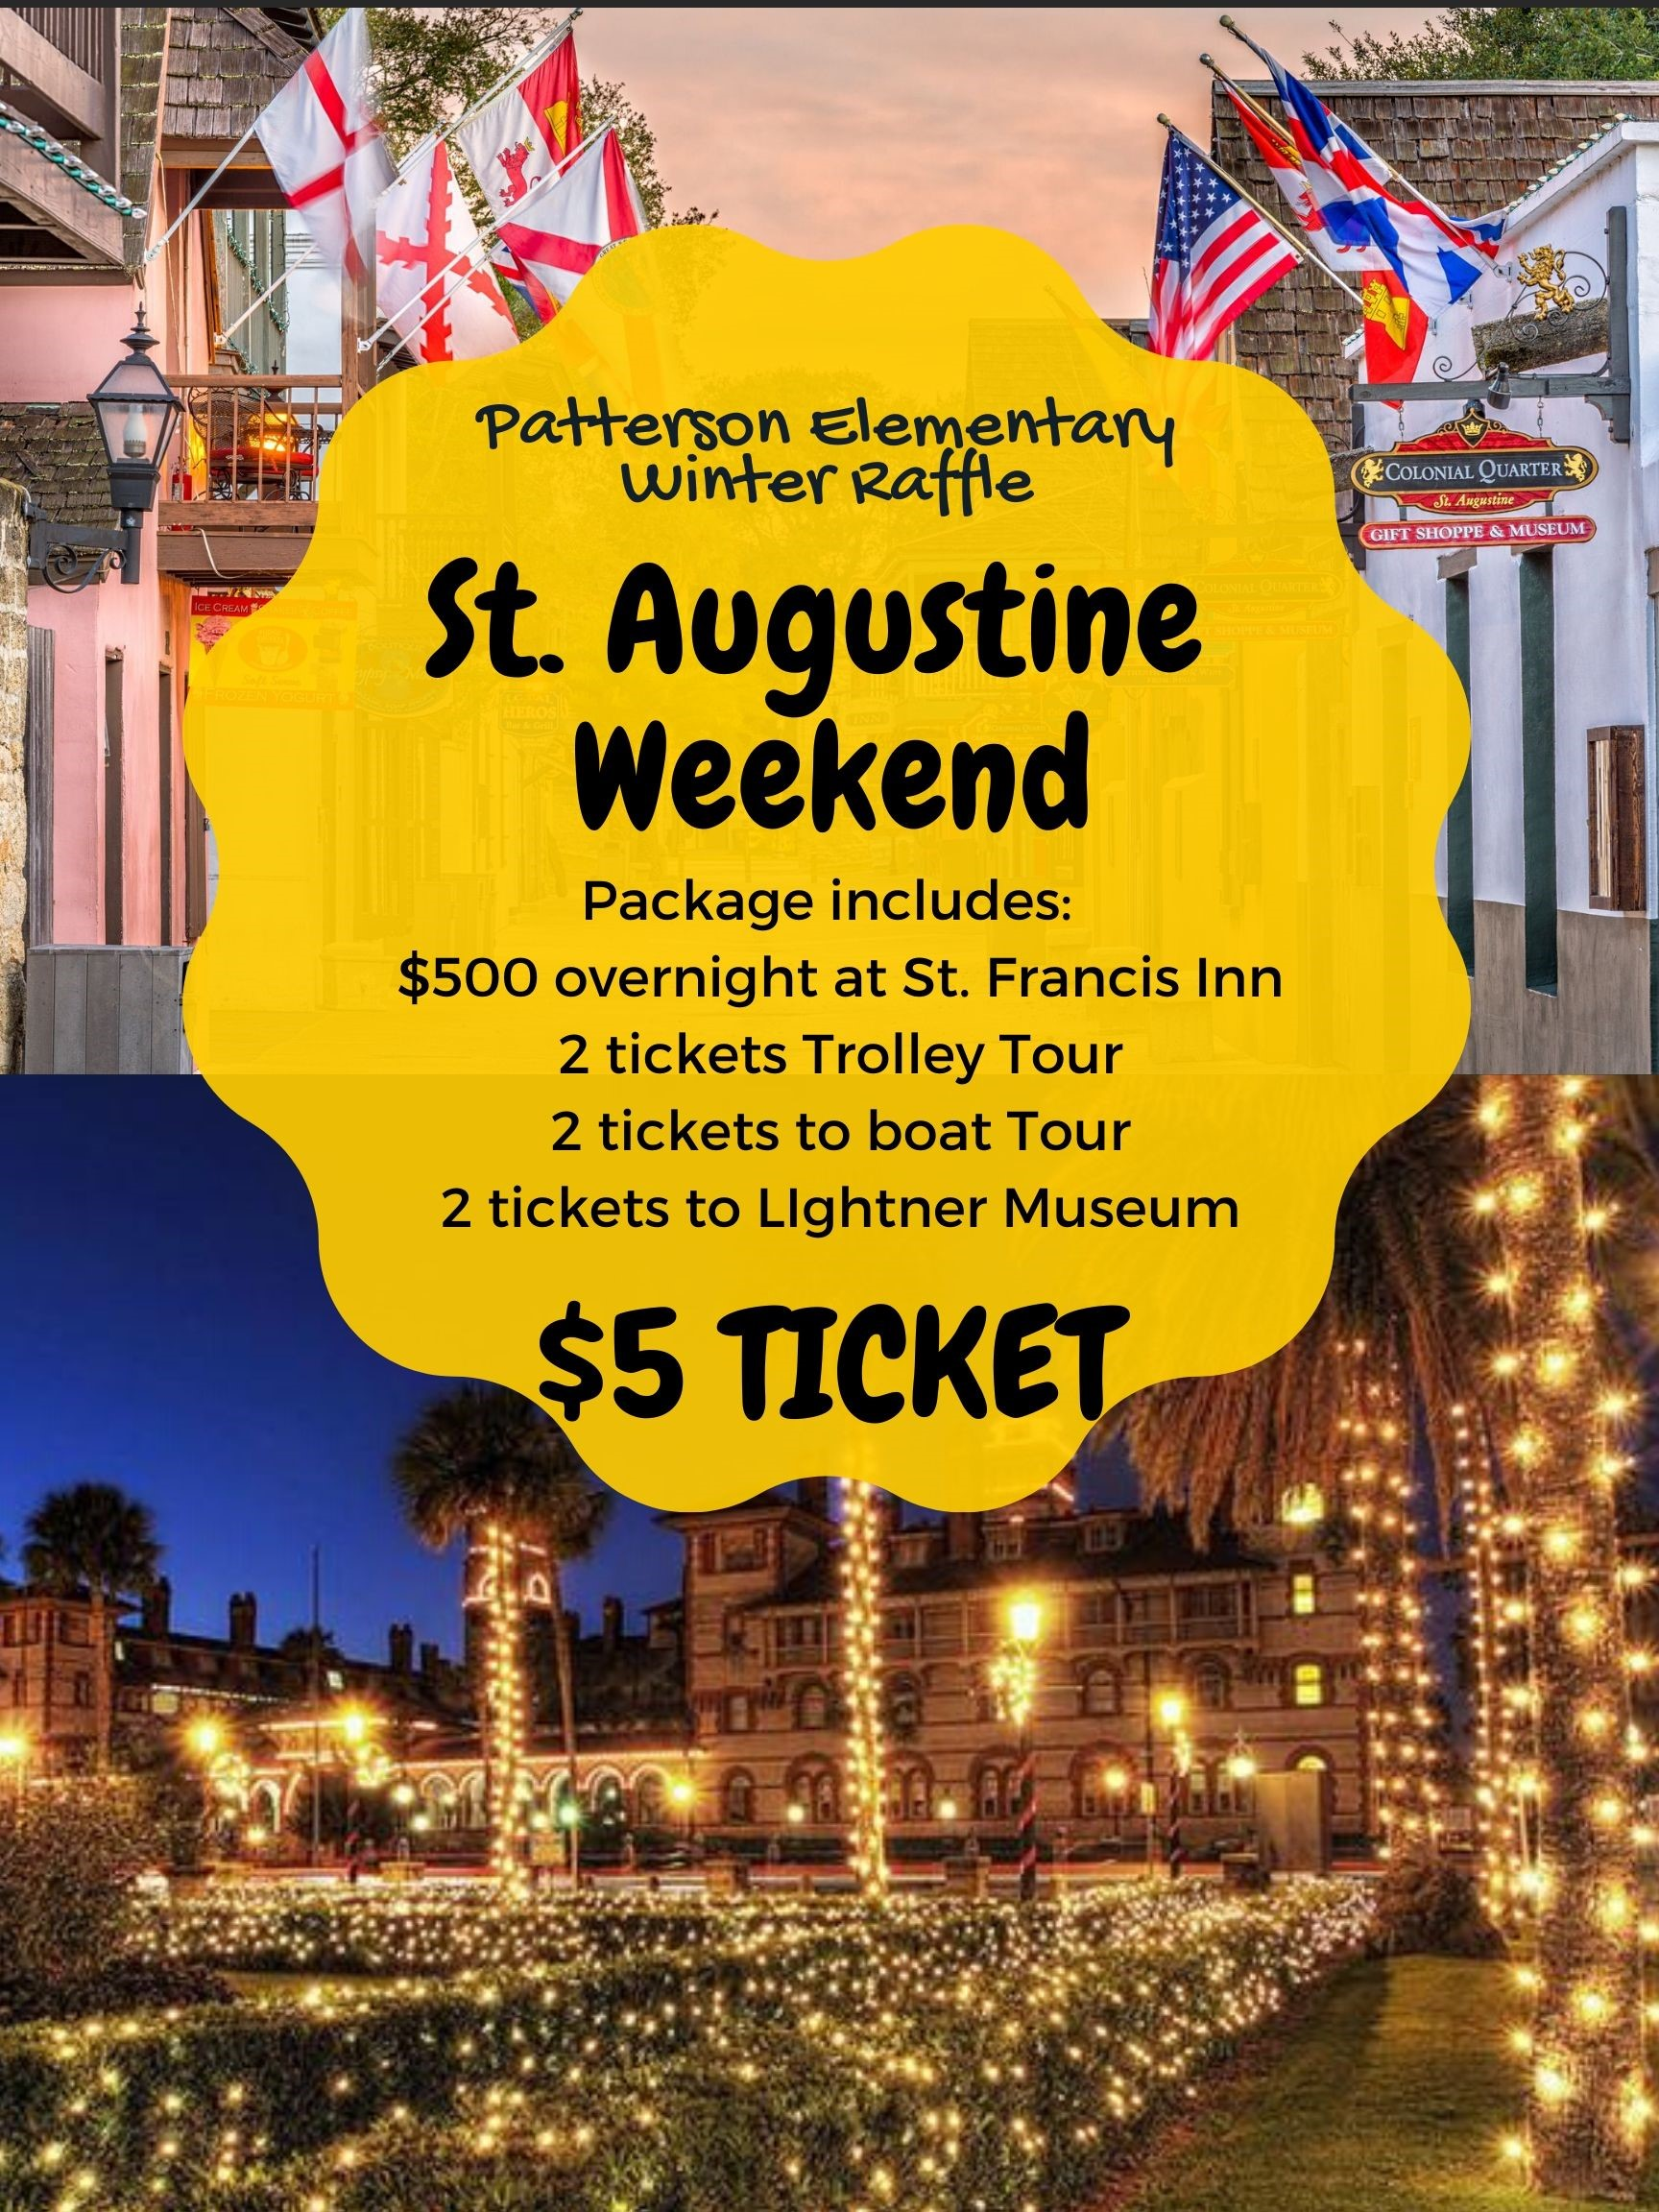 PES Winter Raffle tickets on sale now for $5 for a St. Augustine Weekend Getaway